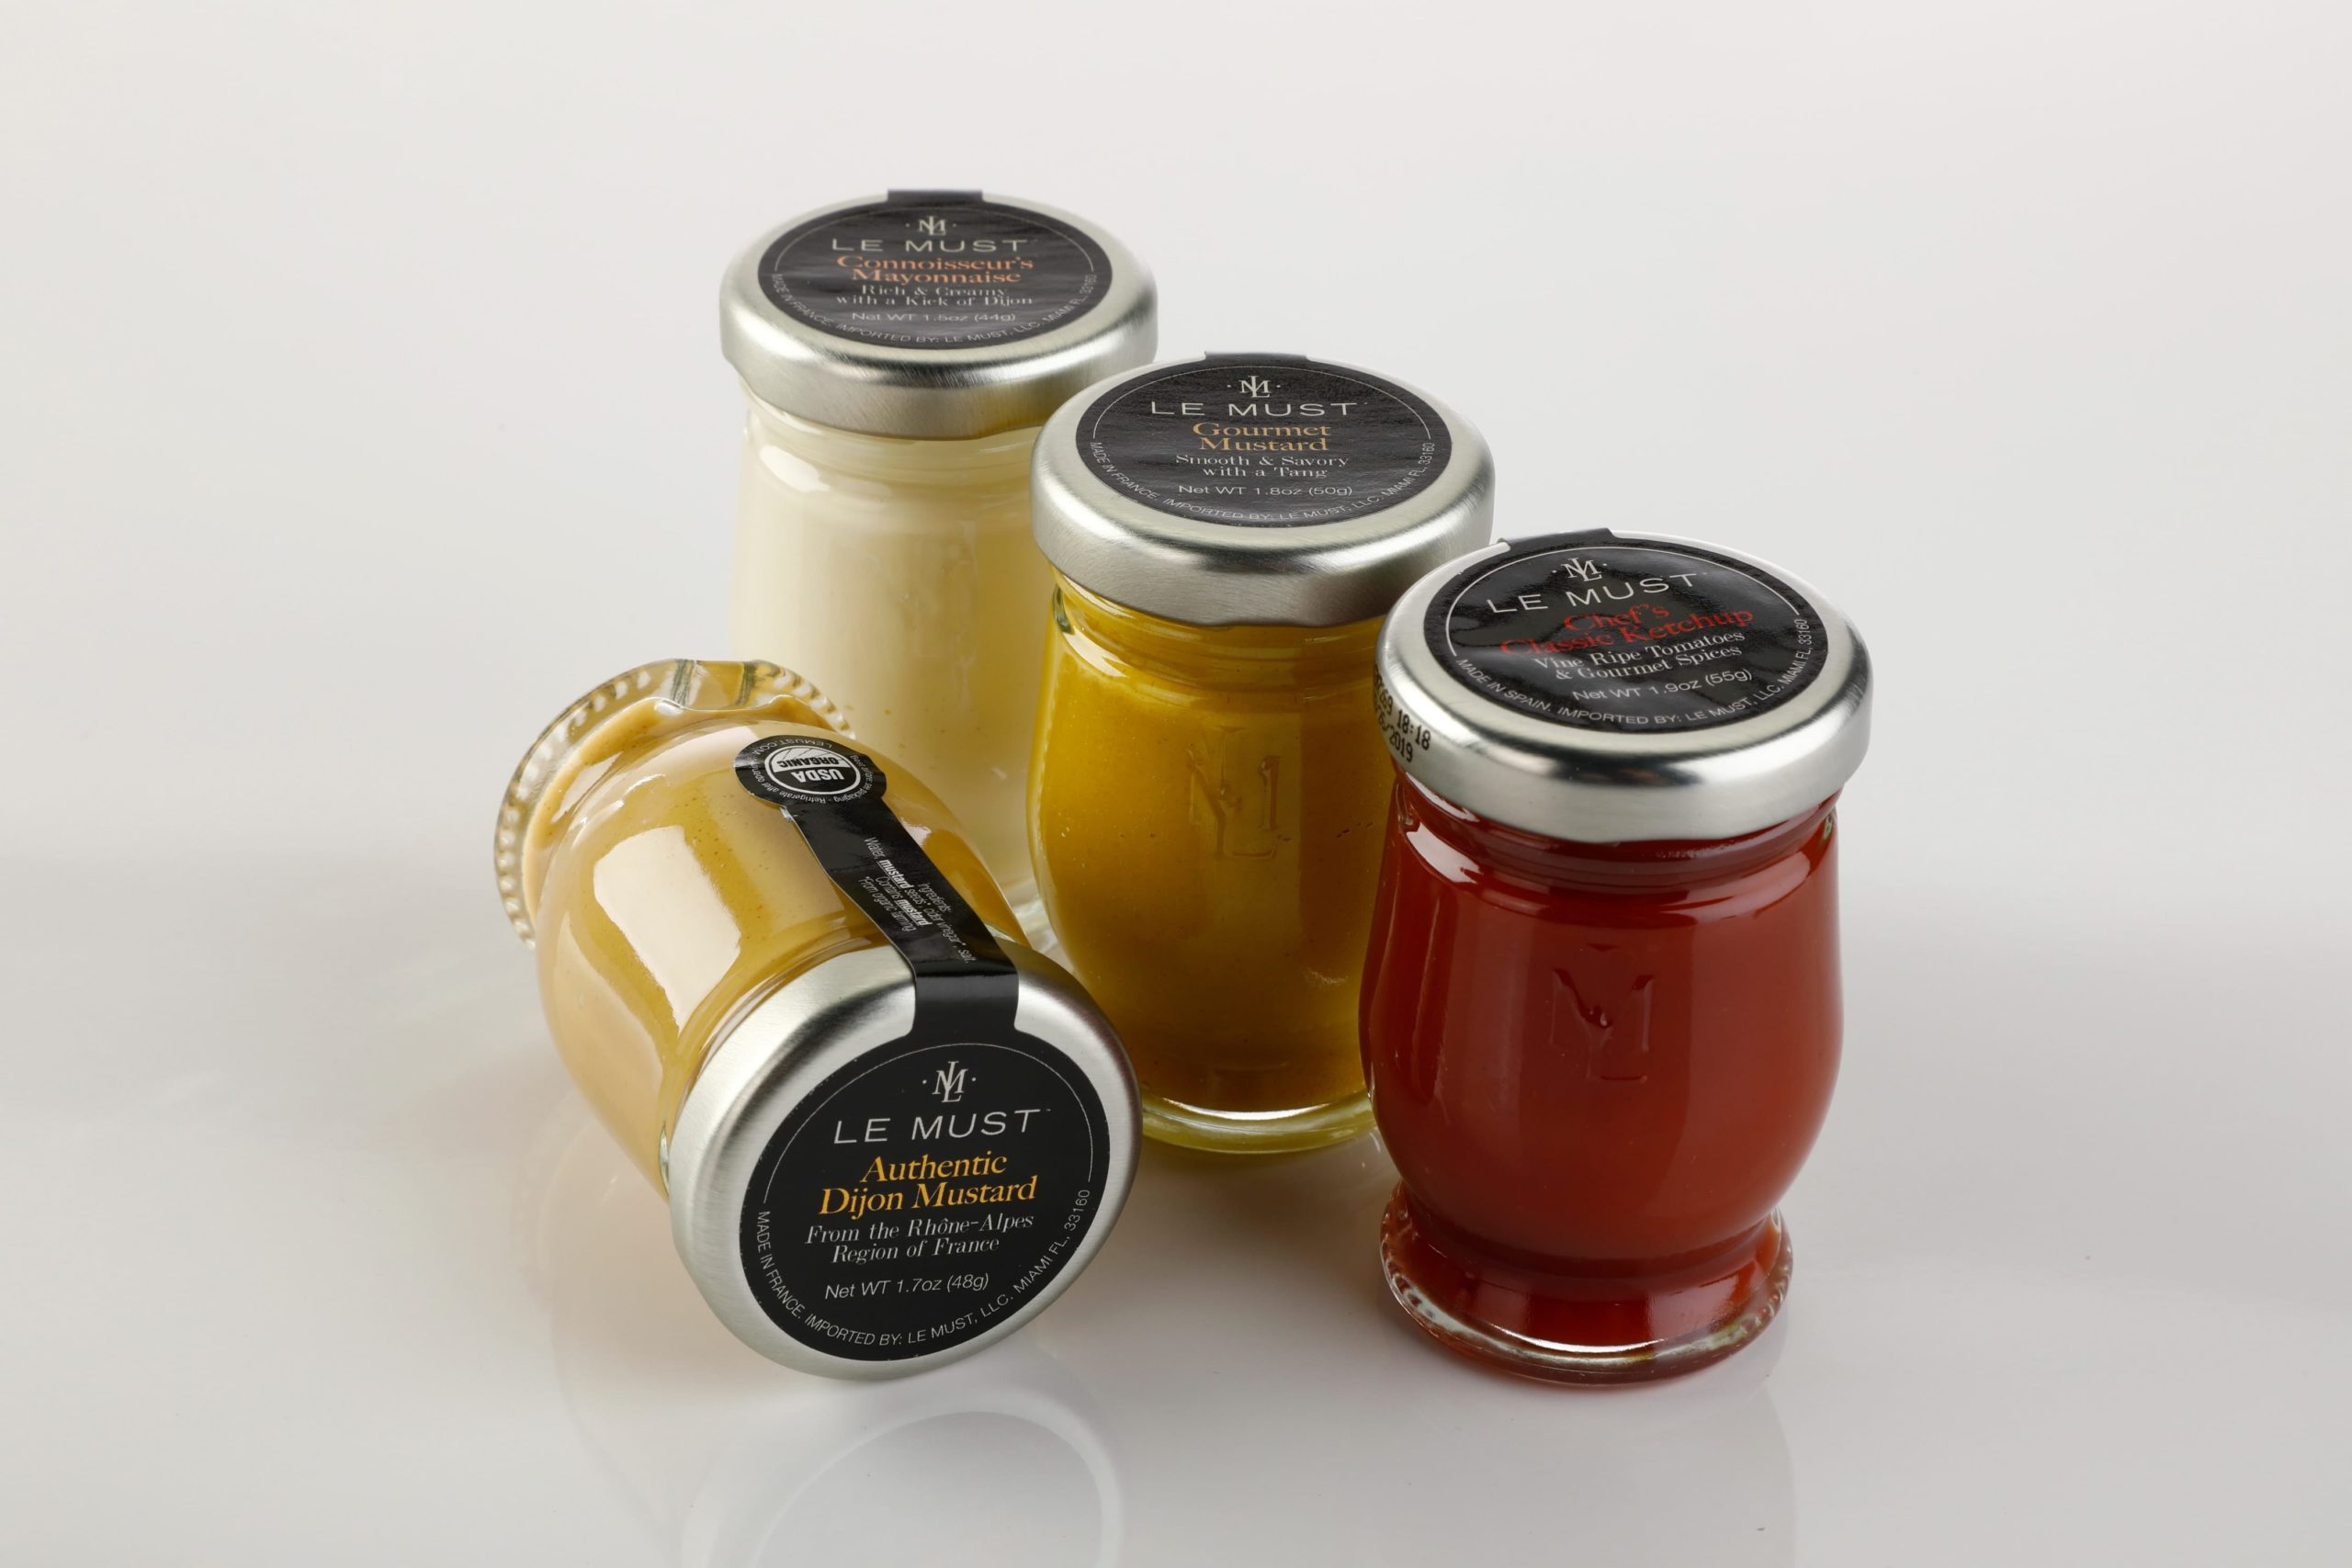 Le Must luxury sauces and condiments for room service